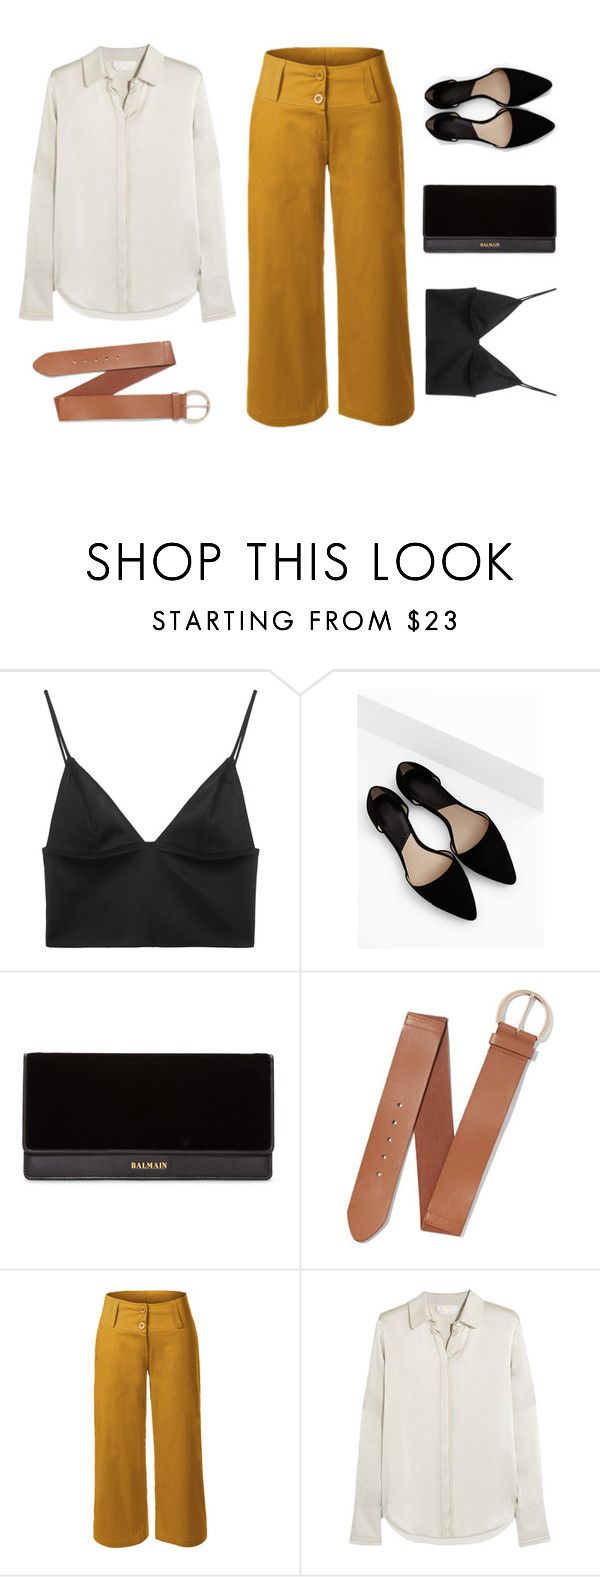 """""""It's Friyay!"""" by le3noclothing ❤ liked on Polyvore featuring T By Alexander Wang, MANGO, Balmain, New York & Company, LE3NO, Chloé and modern"""